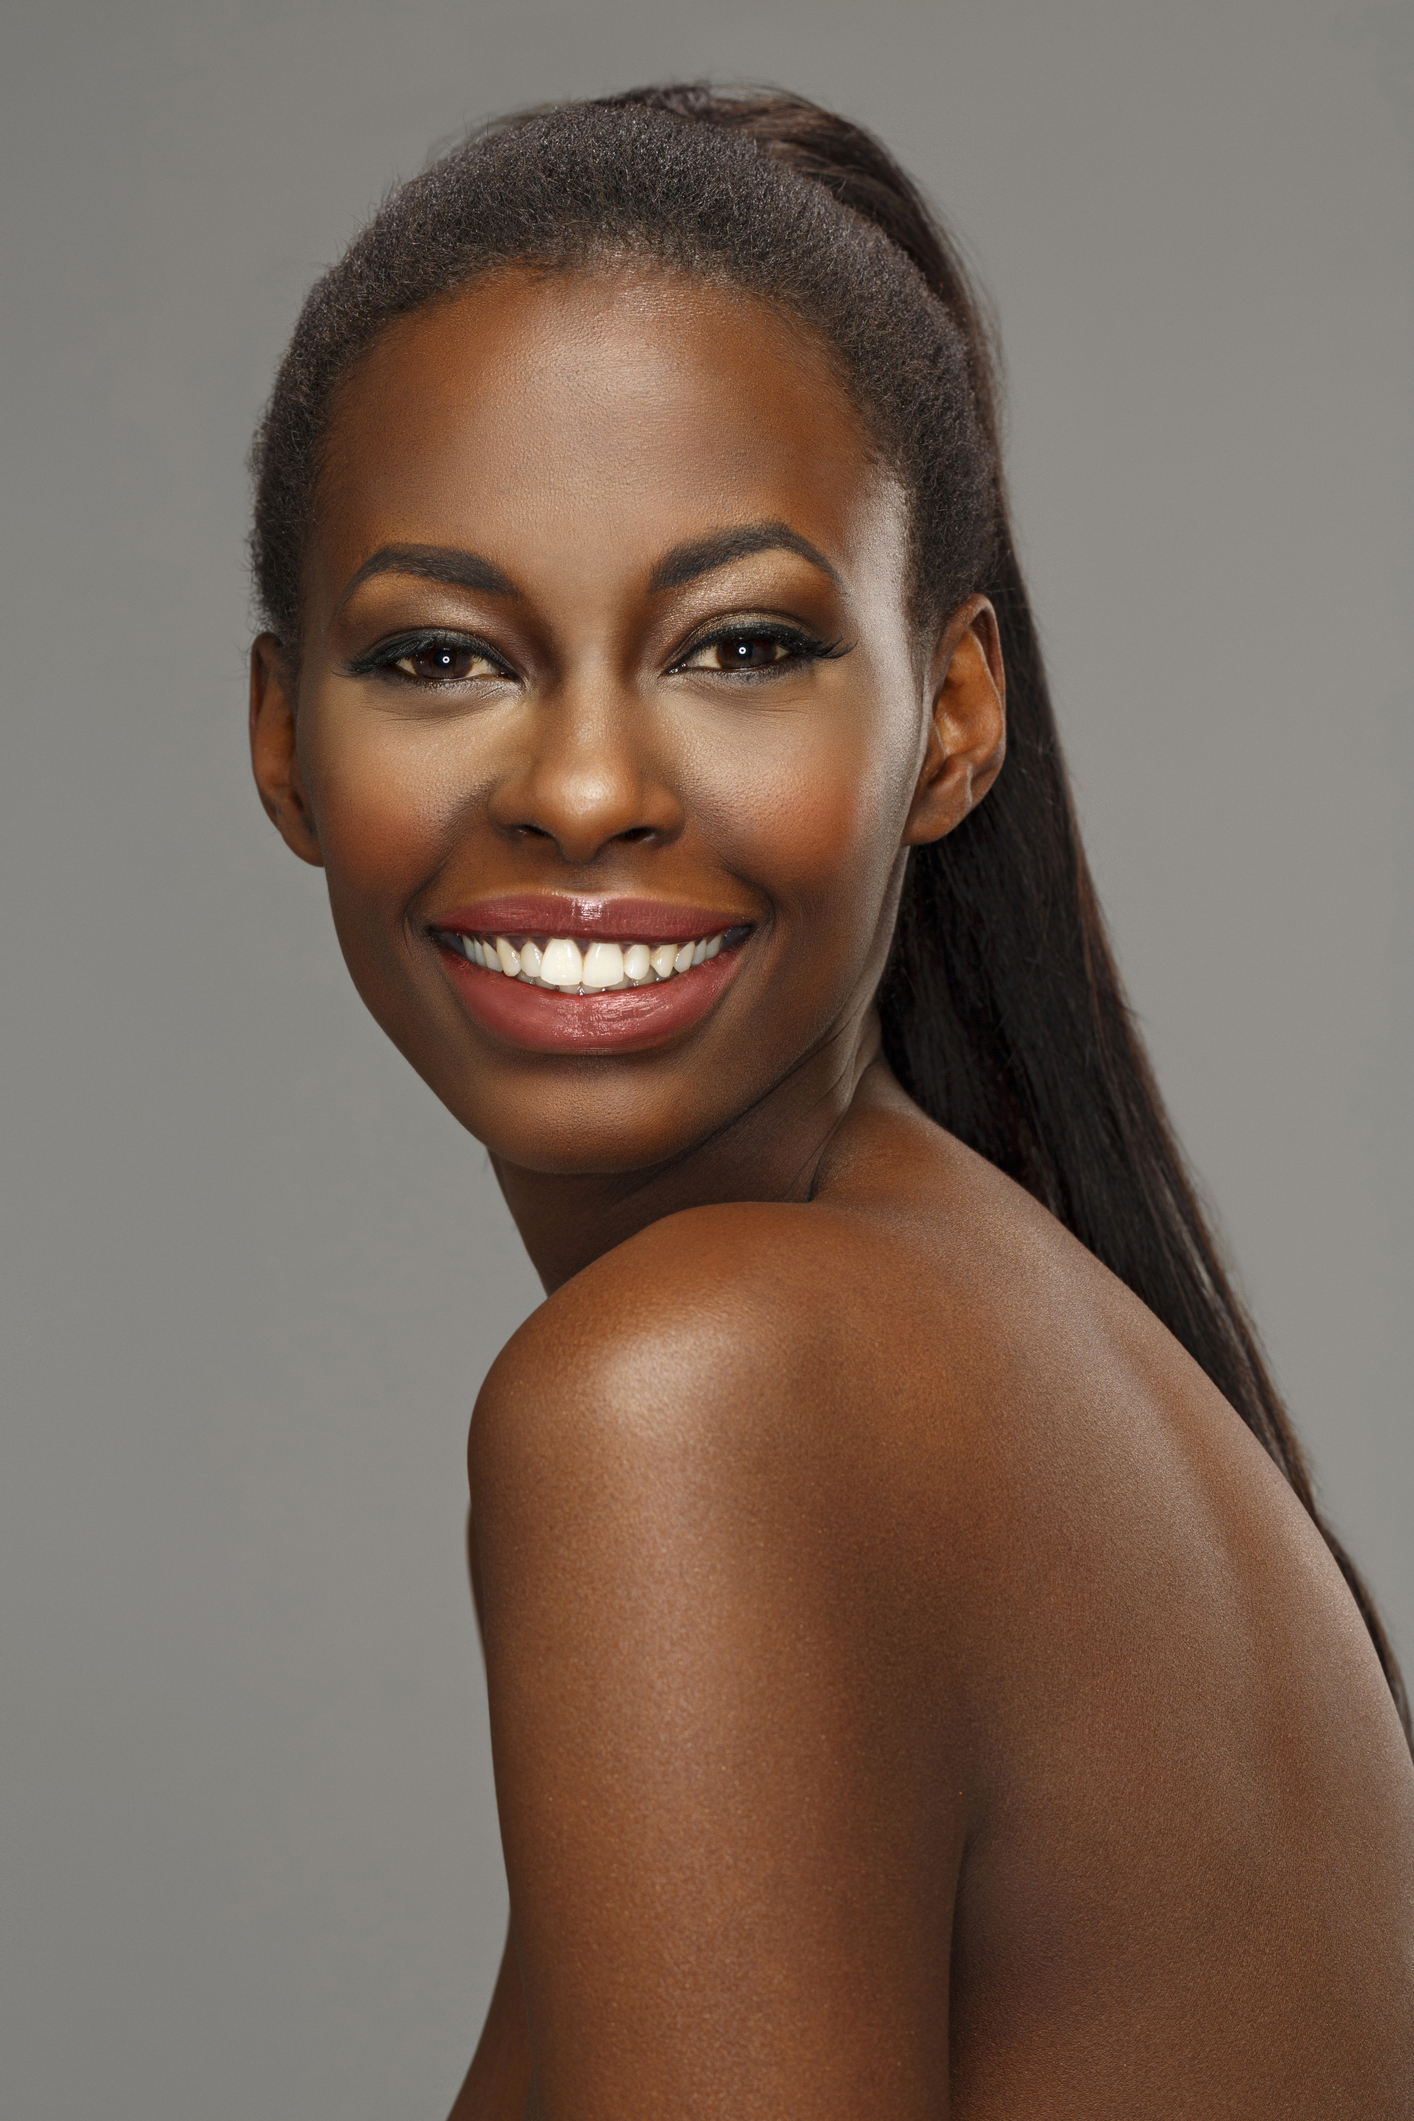 Beauty portrait of beautiful toothy smile young african ethnicity woman